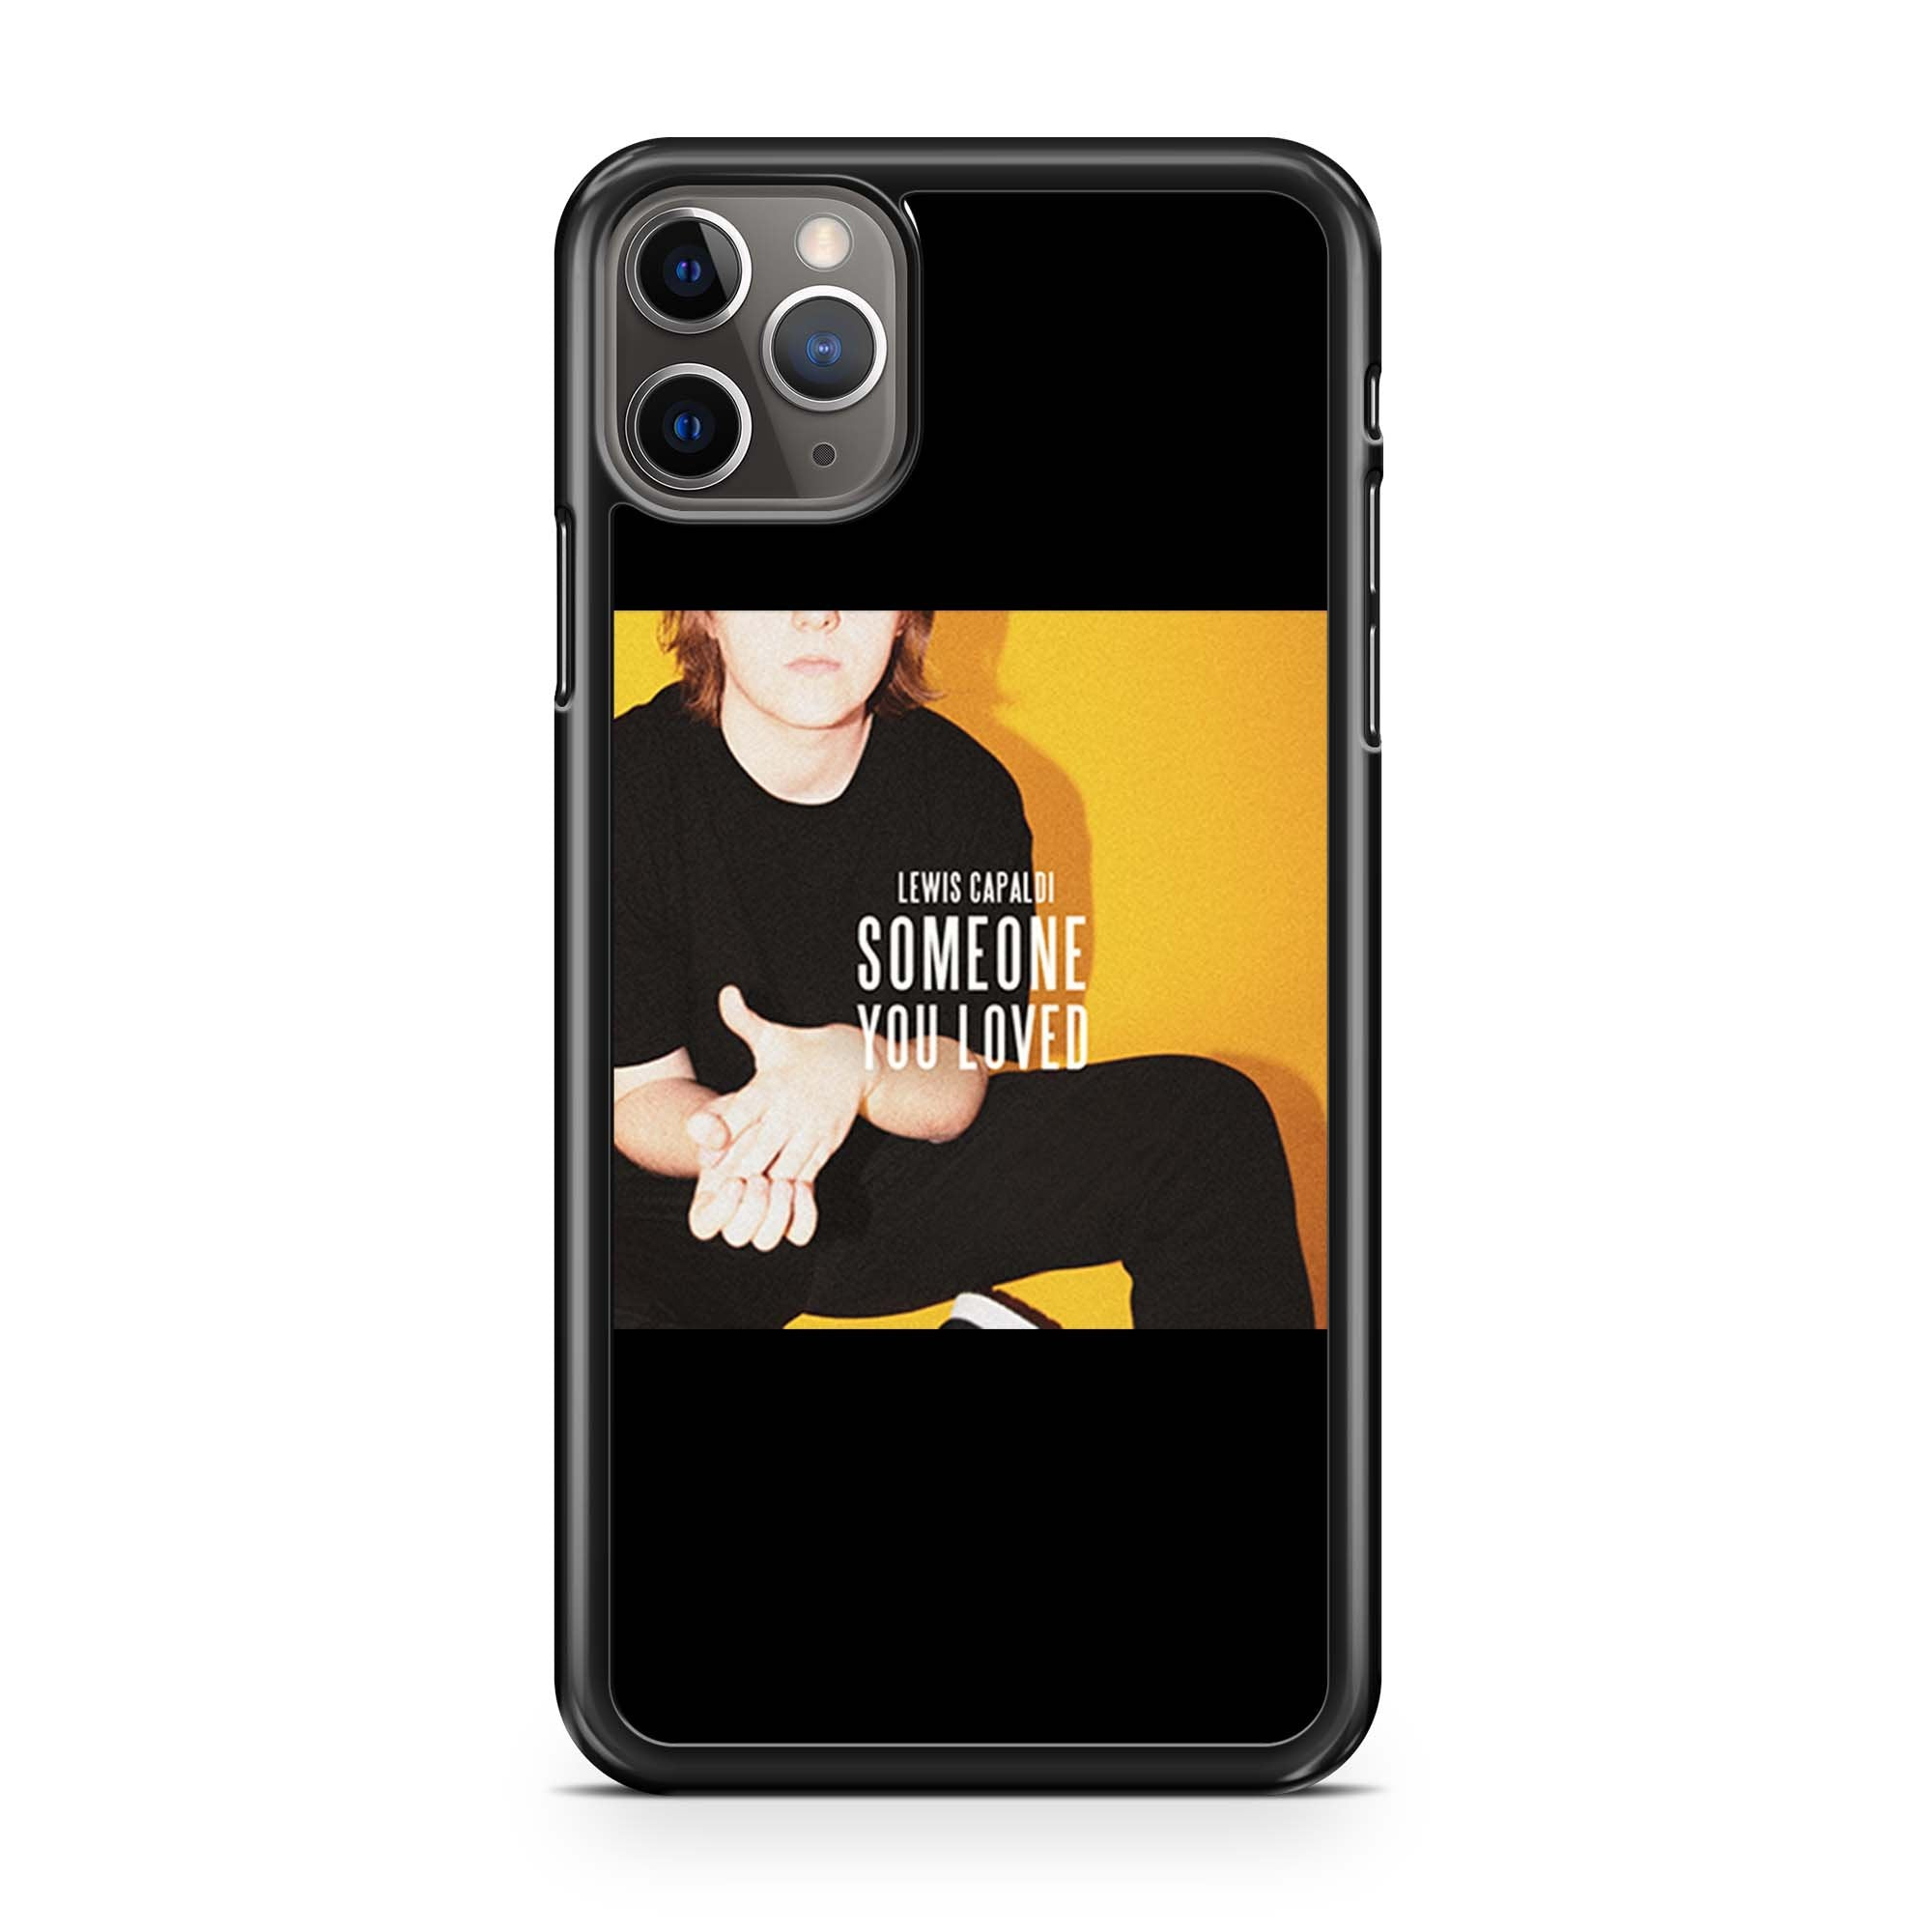 Lewis Capaldi Someone You Loved  Cover iPhone 11 Pro Max Case